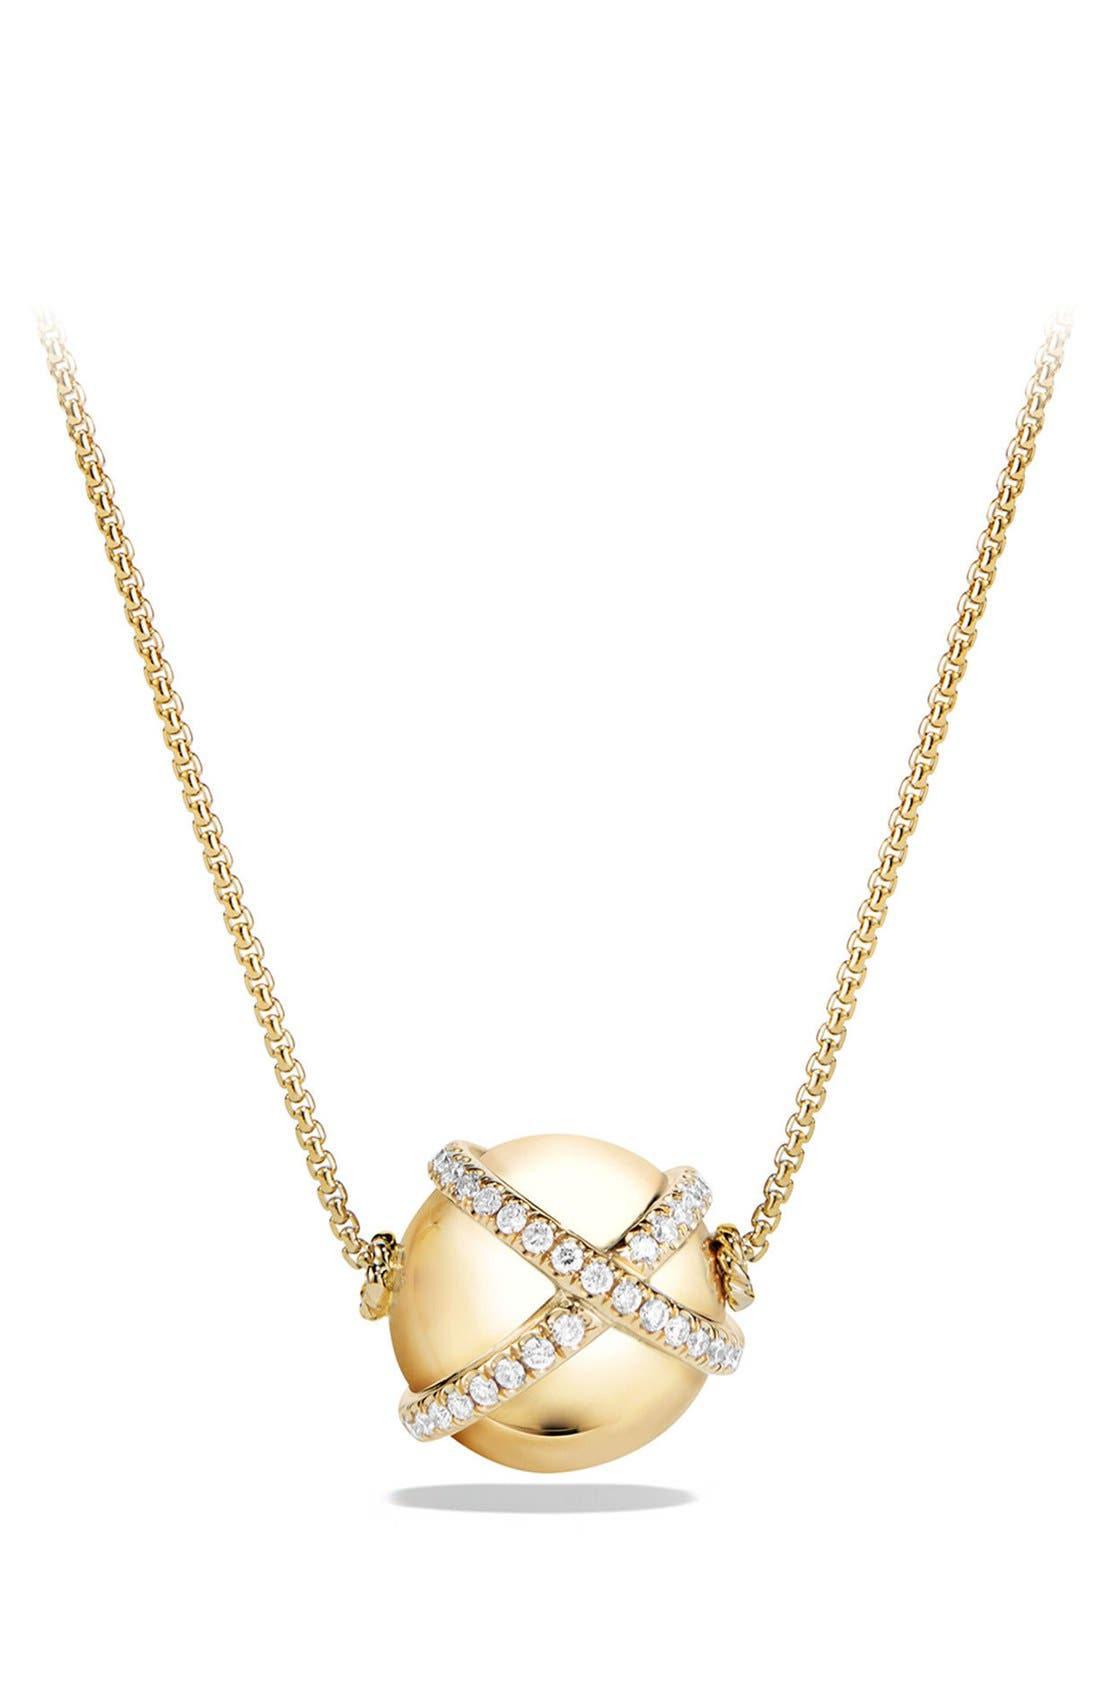 David Yurman 'Solari' Wrap Pendant Necklace with Pavé Diamonds in 18k Gold